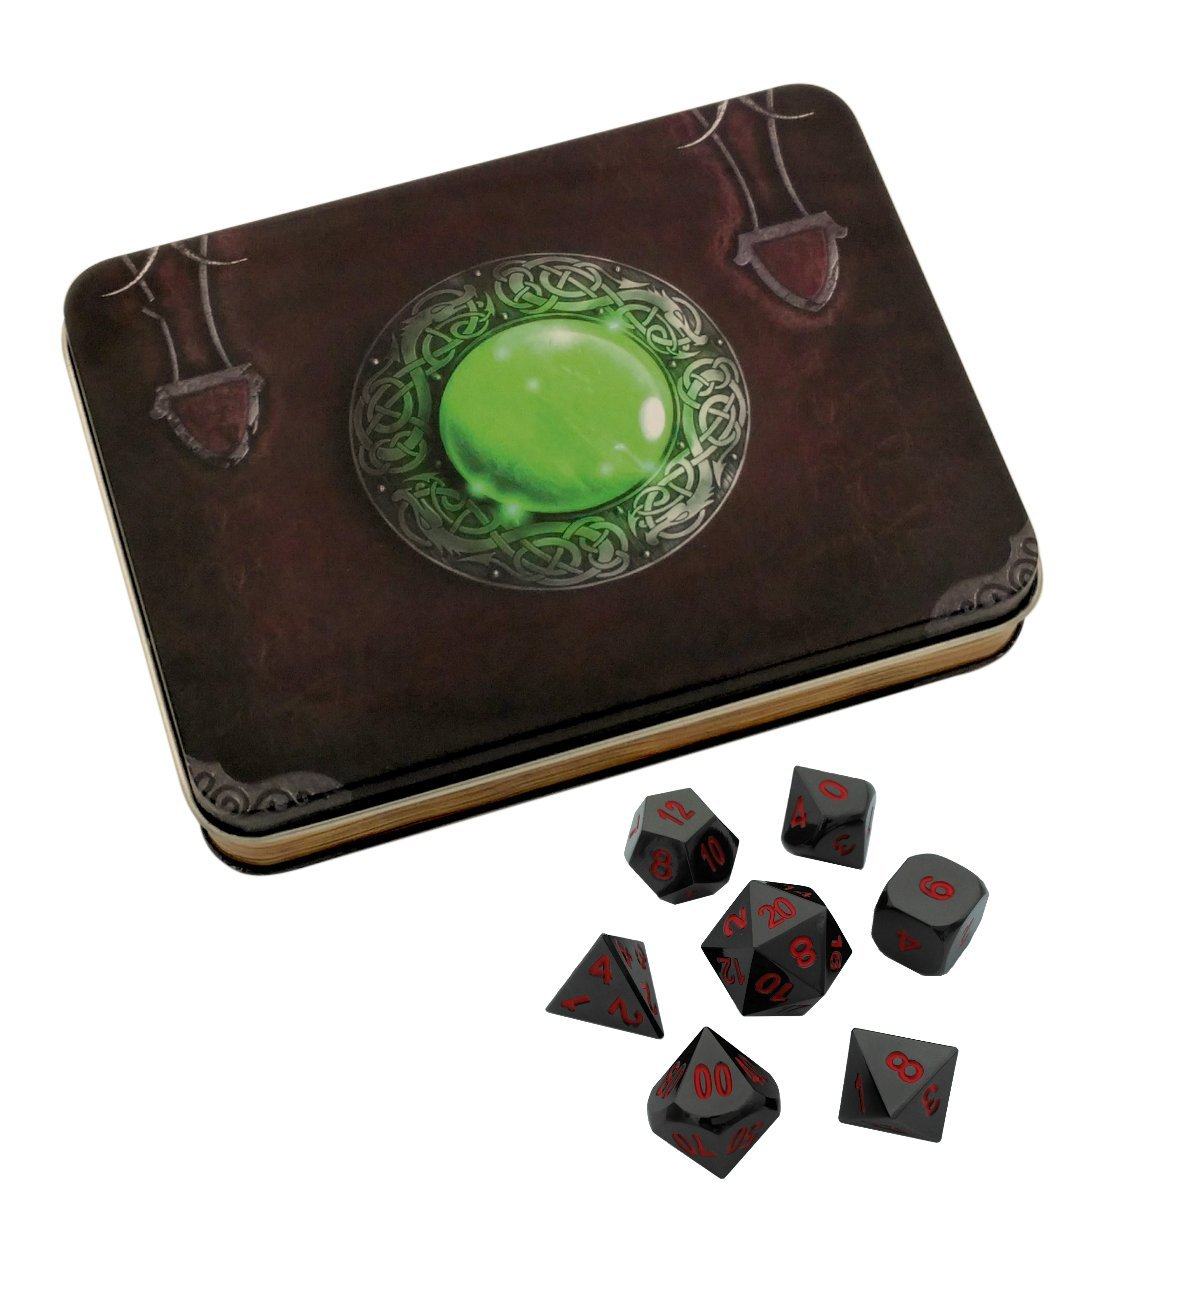 Skull Splitter Dice - Wizard's Grimoire with Smoke and Fire | Shiny Black Nickel with Red Numbers Metal Dice - Solid Metal Polyhedral Role Playing Game (RPG) Dice Set (7 Die in Pack) with Dice Case